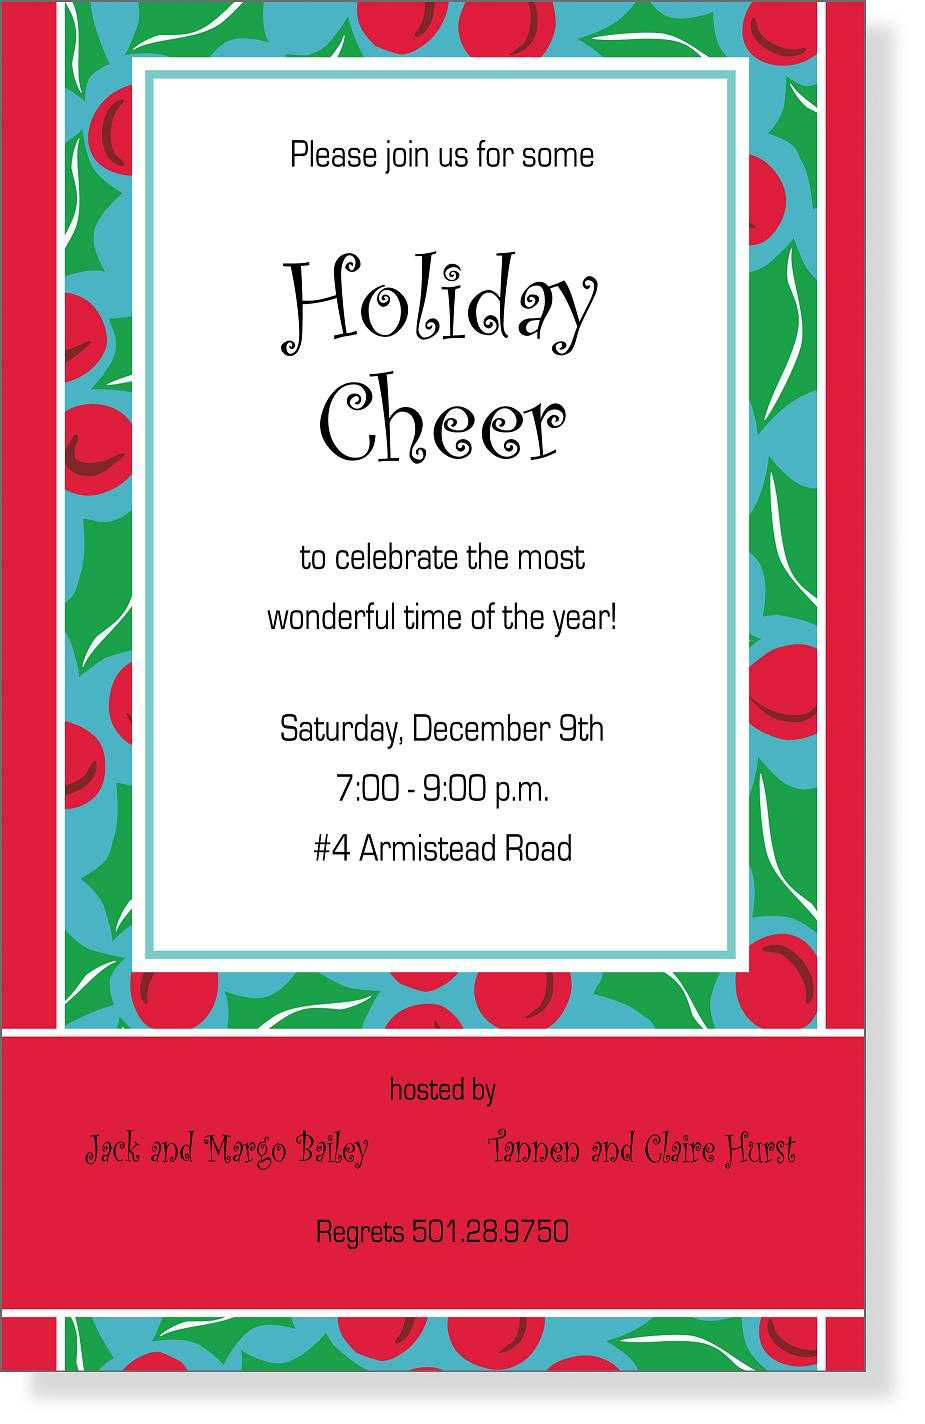 Christmas open house invitations christmas open house christmas open house invitations christmas open house invitations for special events stopboris Gallery